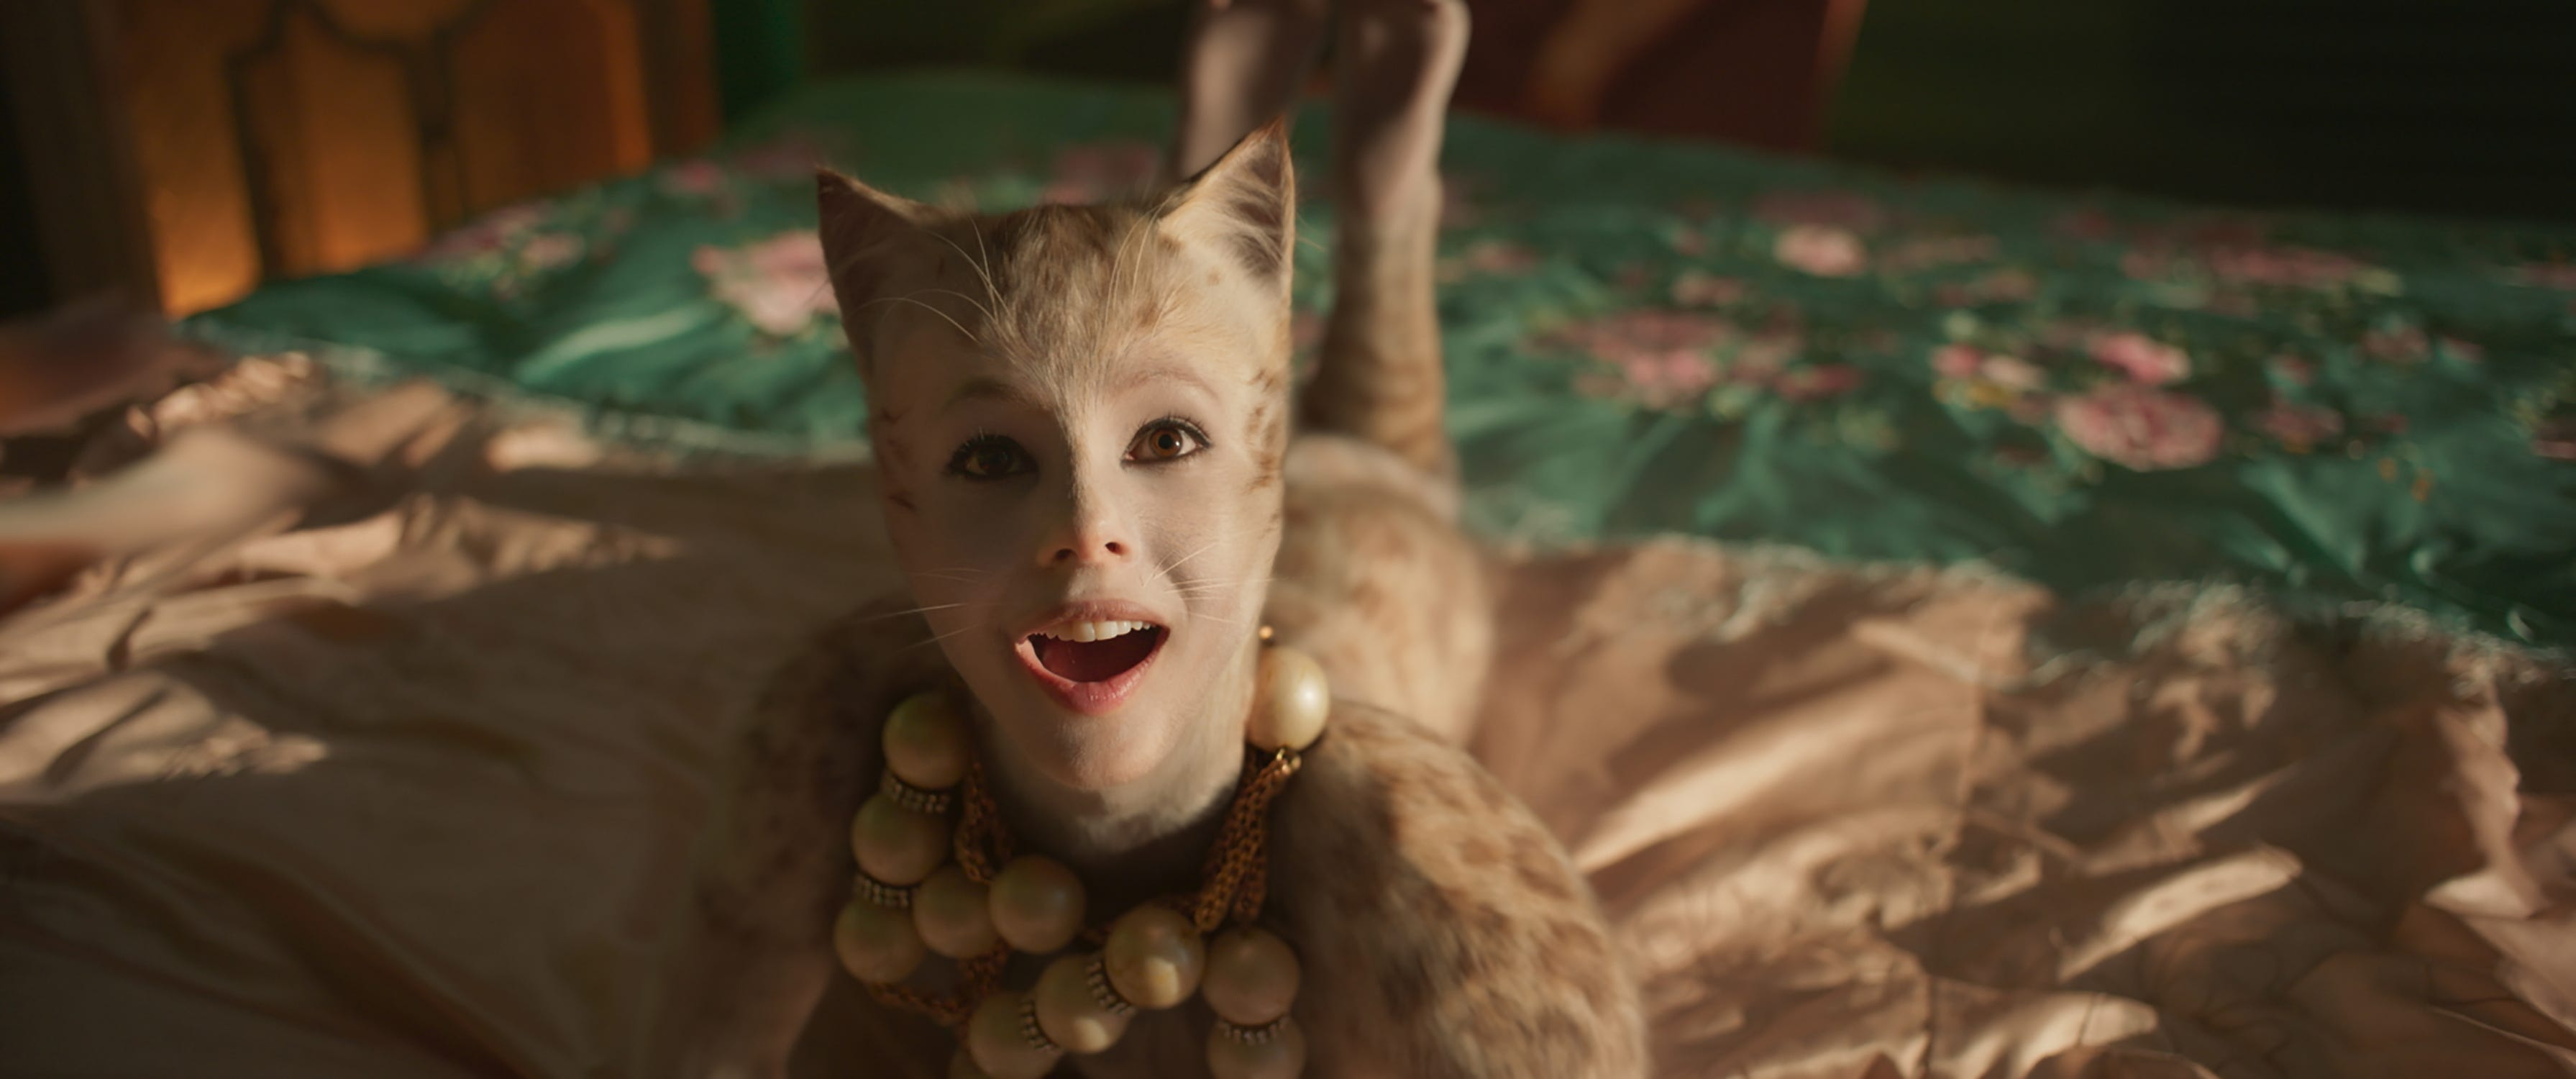 Margot Robbie Wanted A Real Hyena For Harley S Pet Newsrust